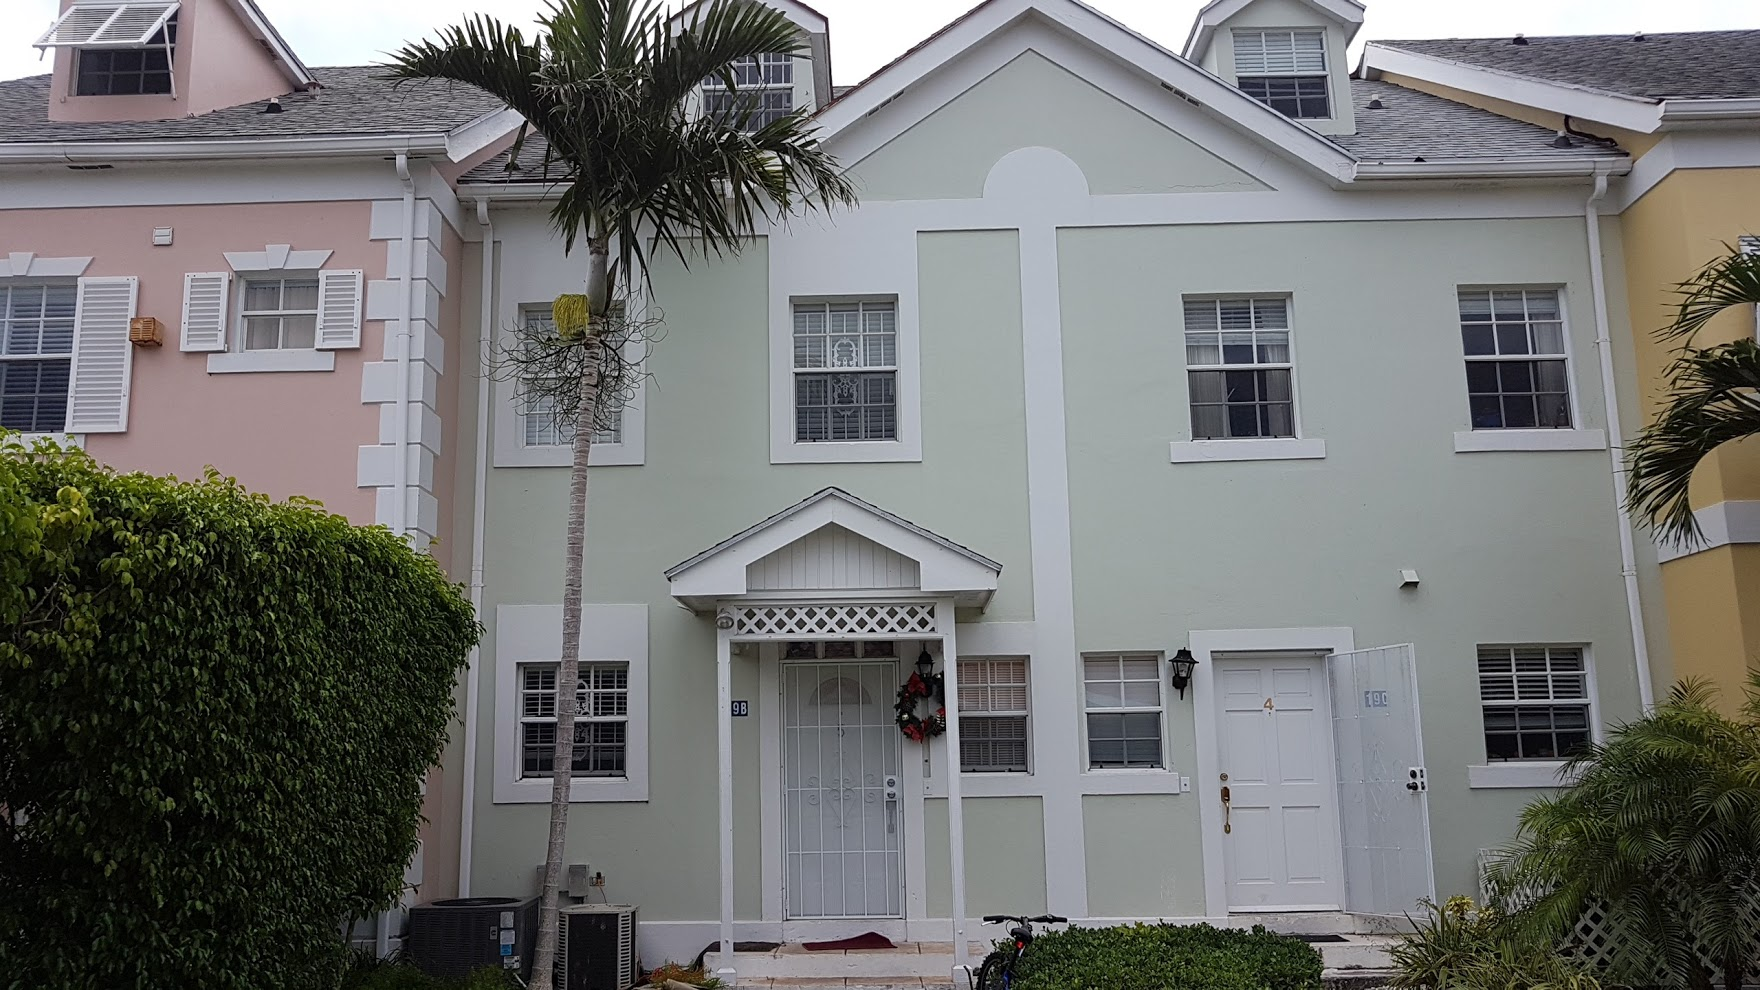 Co-op / Condo for Rent at # 5 Sand Dollar Island, Sandyport Sandyport, Cable Beach, Nassau And Paradise Island Bahamas